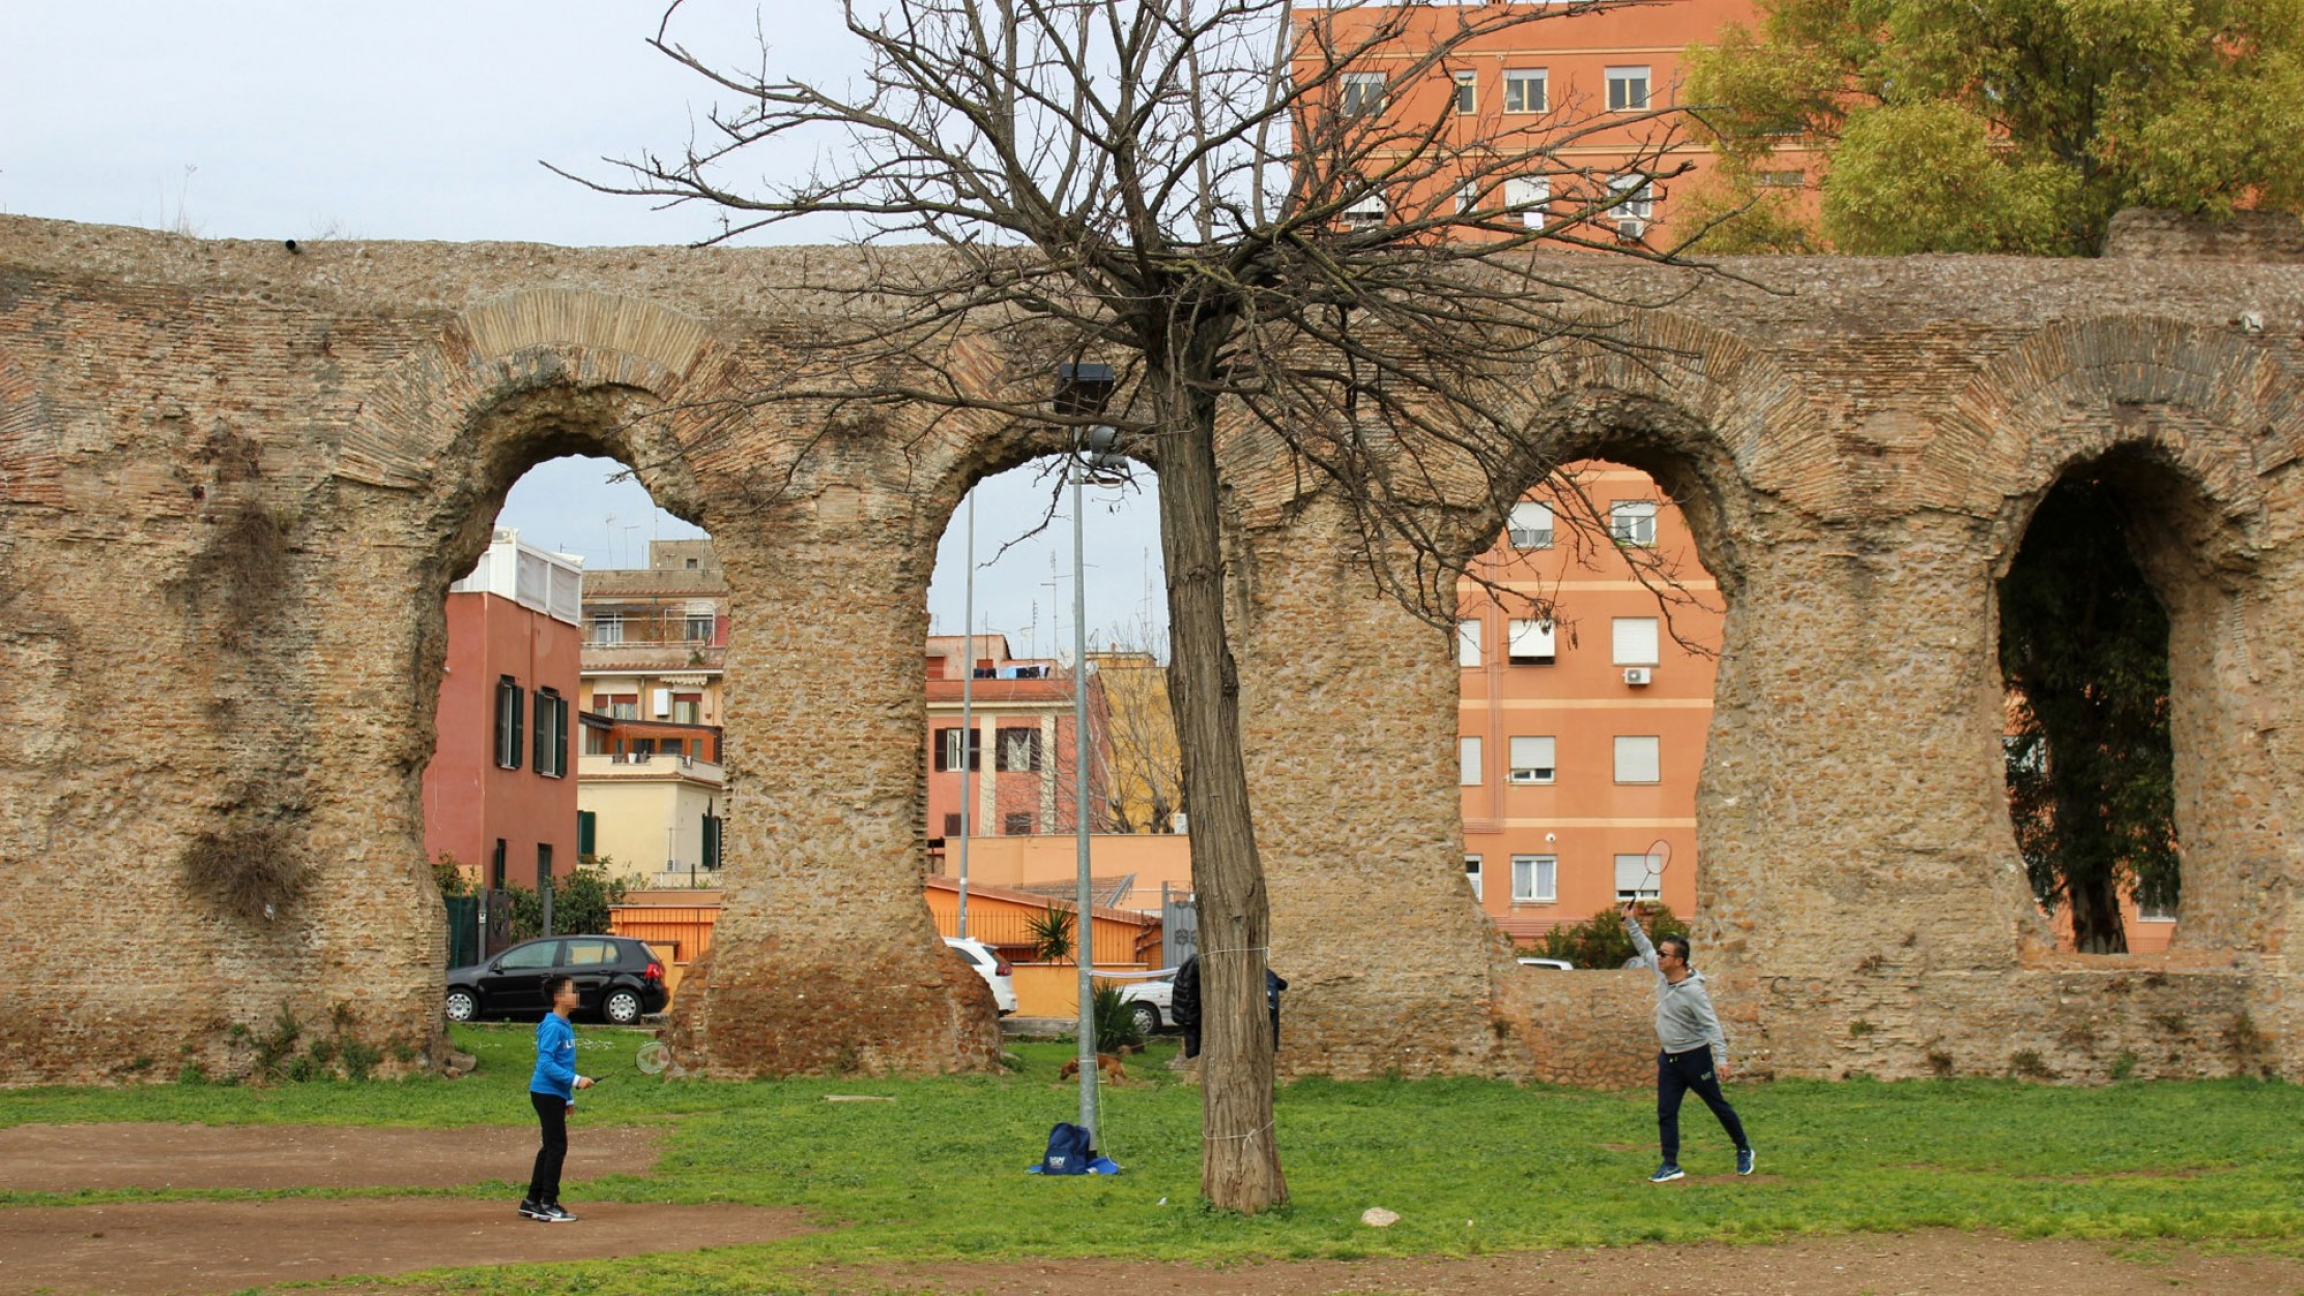 A man and a boy play badminton in front of ruins in a park